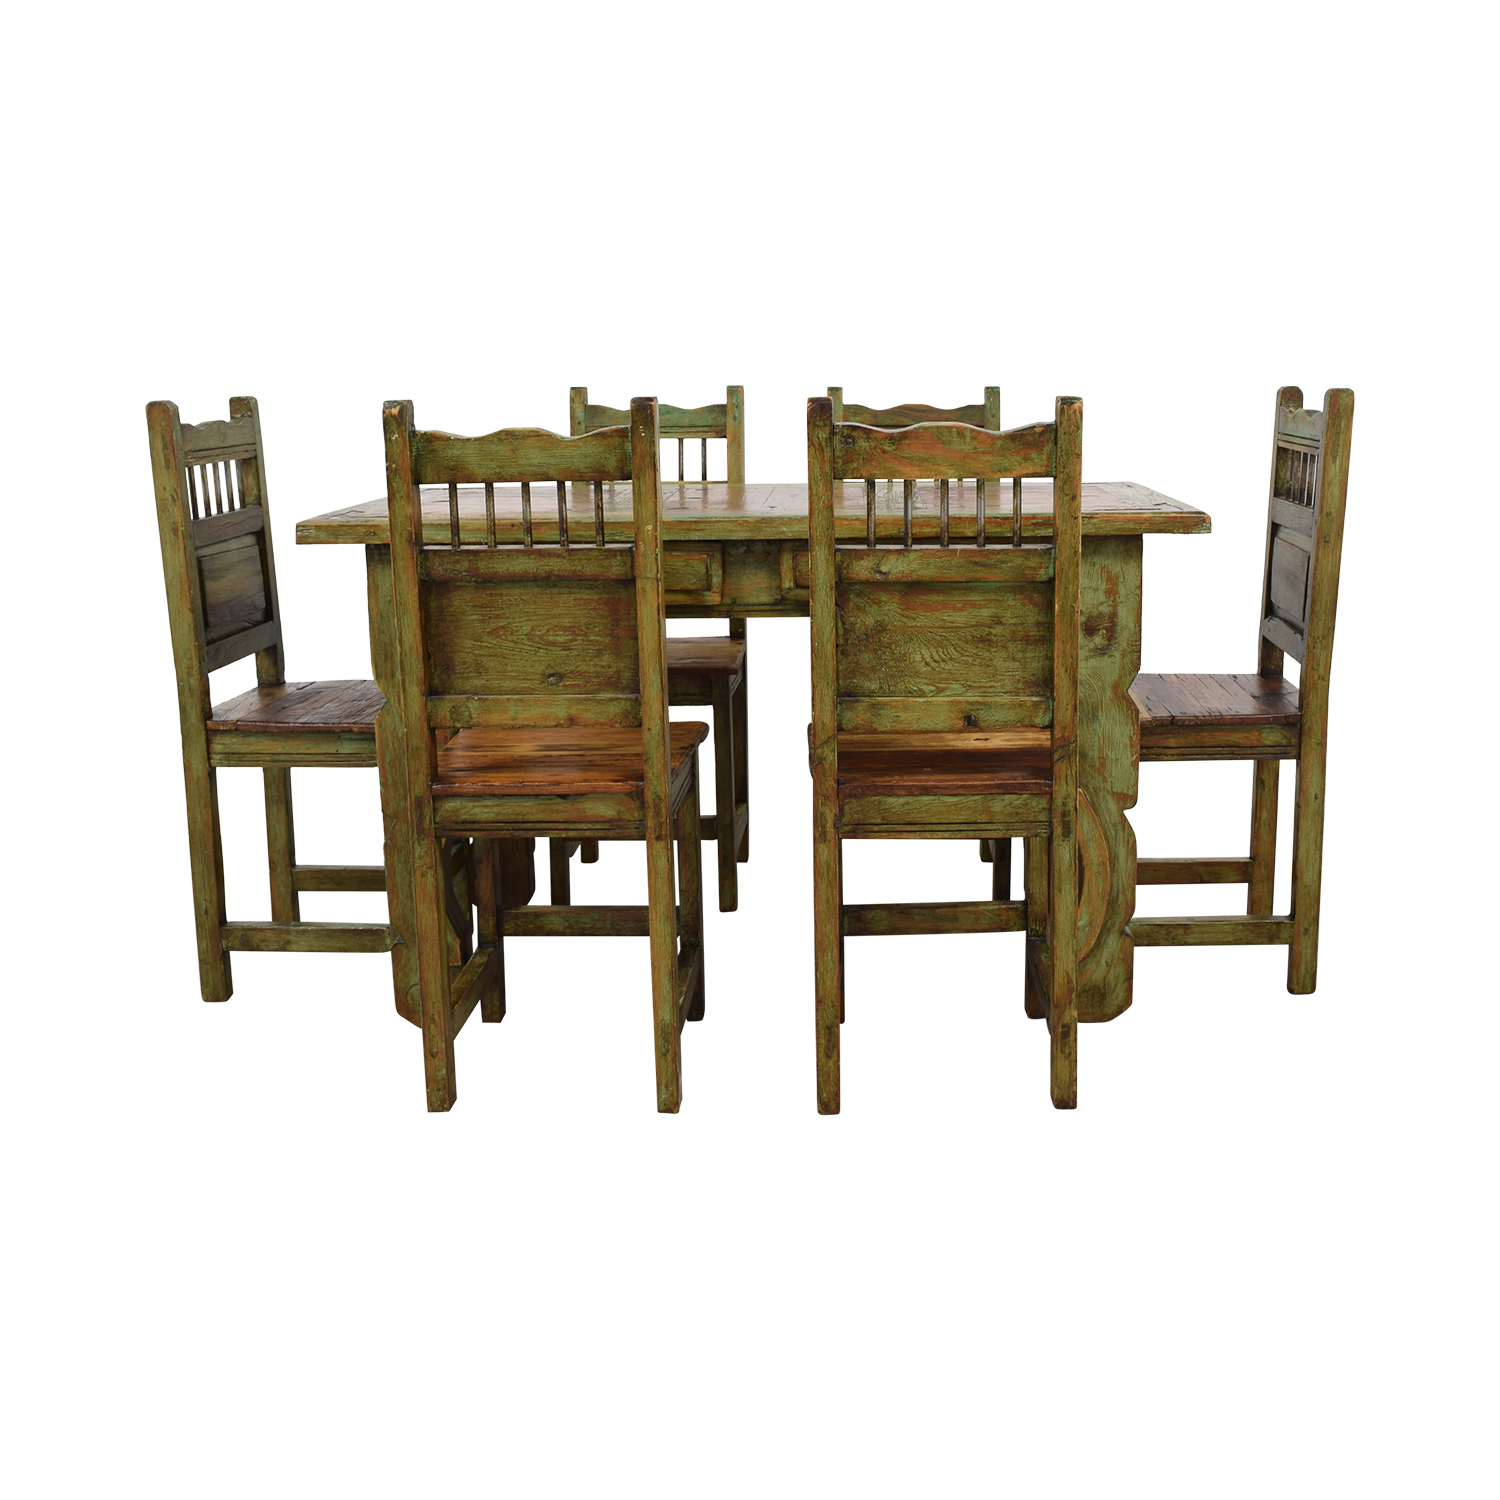 southwest dining chairs chair covers for ikea henriksdal 63 off el barzon rustic recycled wood buy set tables